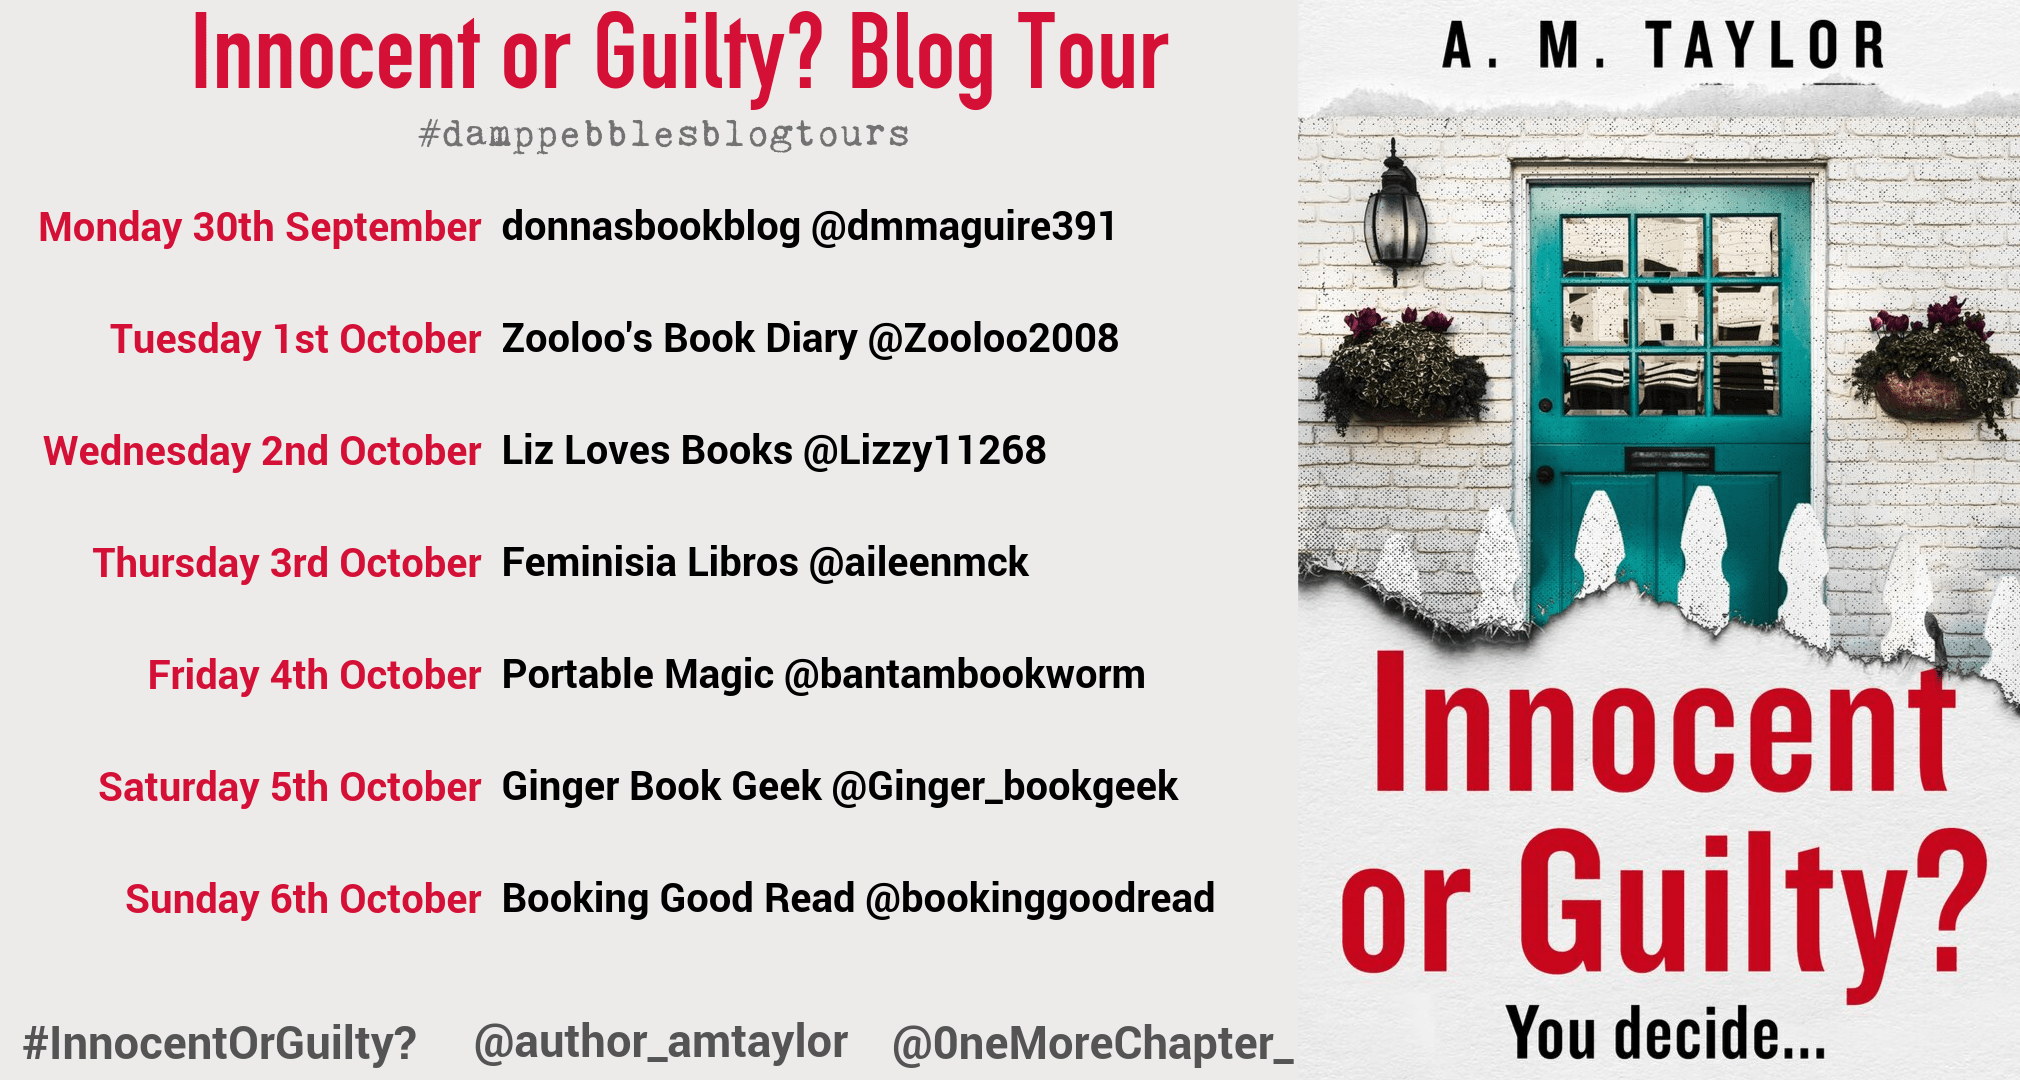 #BookReview of Innocent or Guilty? by A.M. Taylor #InnocentOrGuilty? @author_amtaylor @0neMoreChapter_ @KillerReads @damppebbles #dampebblesblogtours